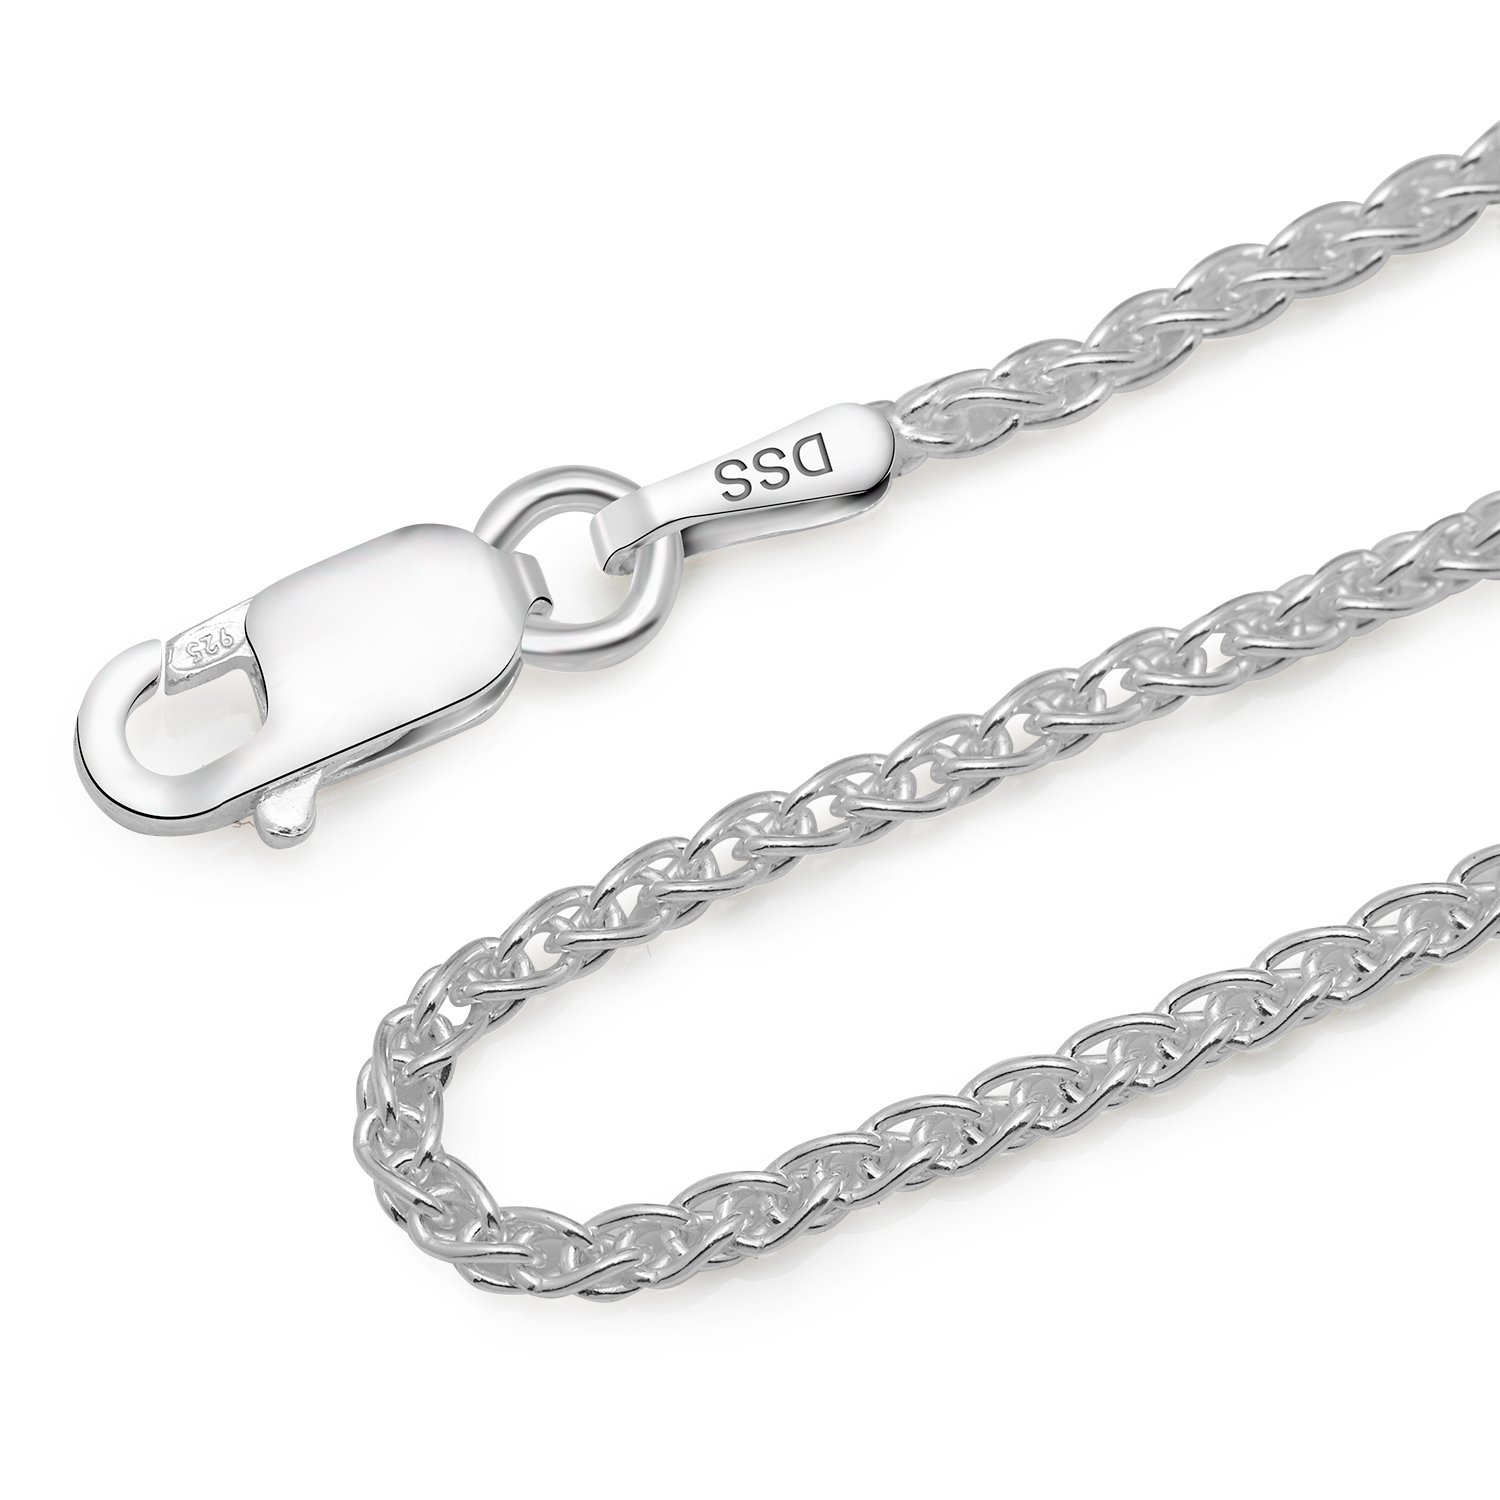 925 Sterling Silver 1.3MM Wheat Chain Lobster Claw Clasp 24'' by Designer Sterling Silver (Image #3)